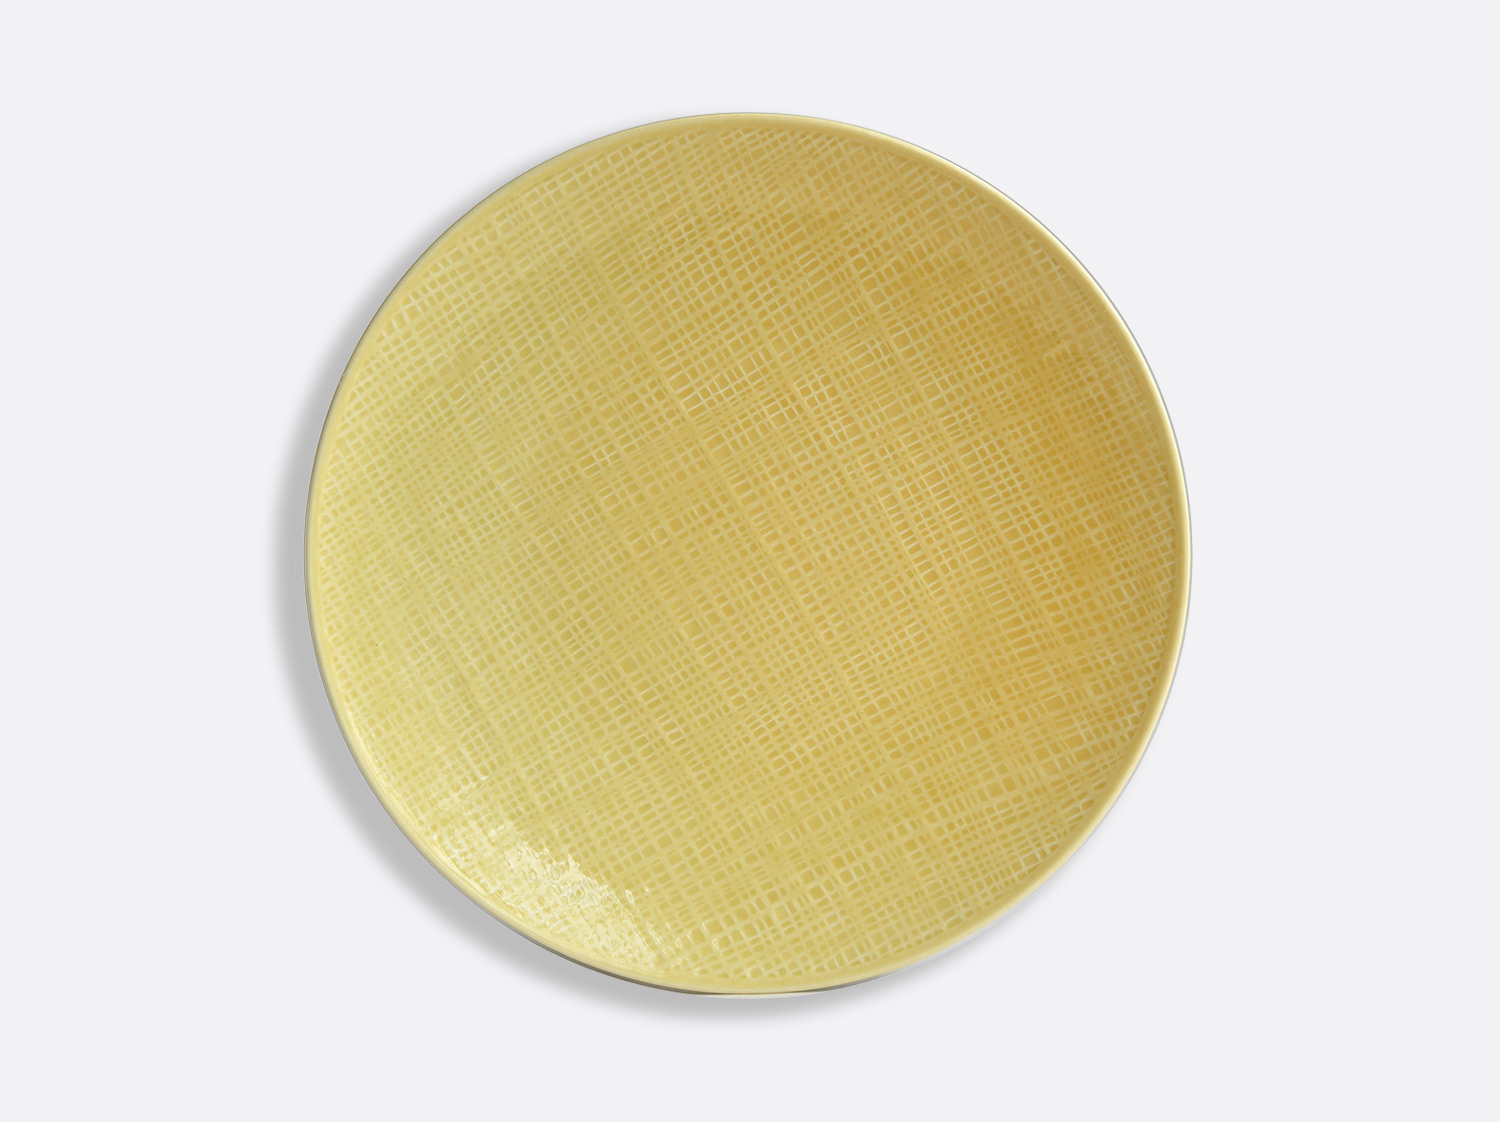 "China Yellow dinner plate 10.5"" of the collection ORGANZA JAUNE PAILLE 